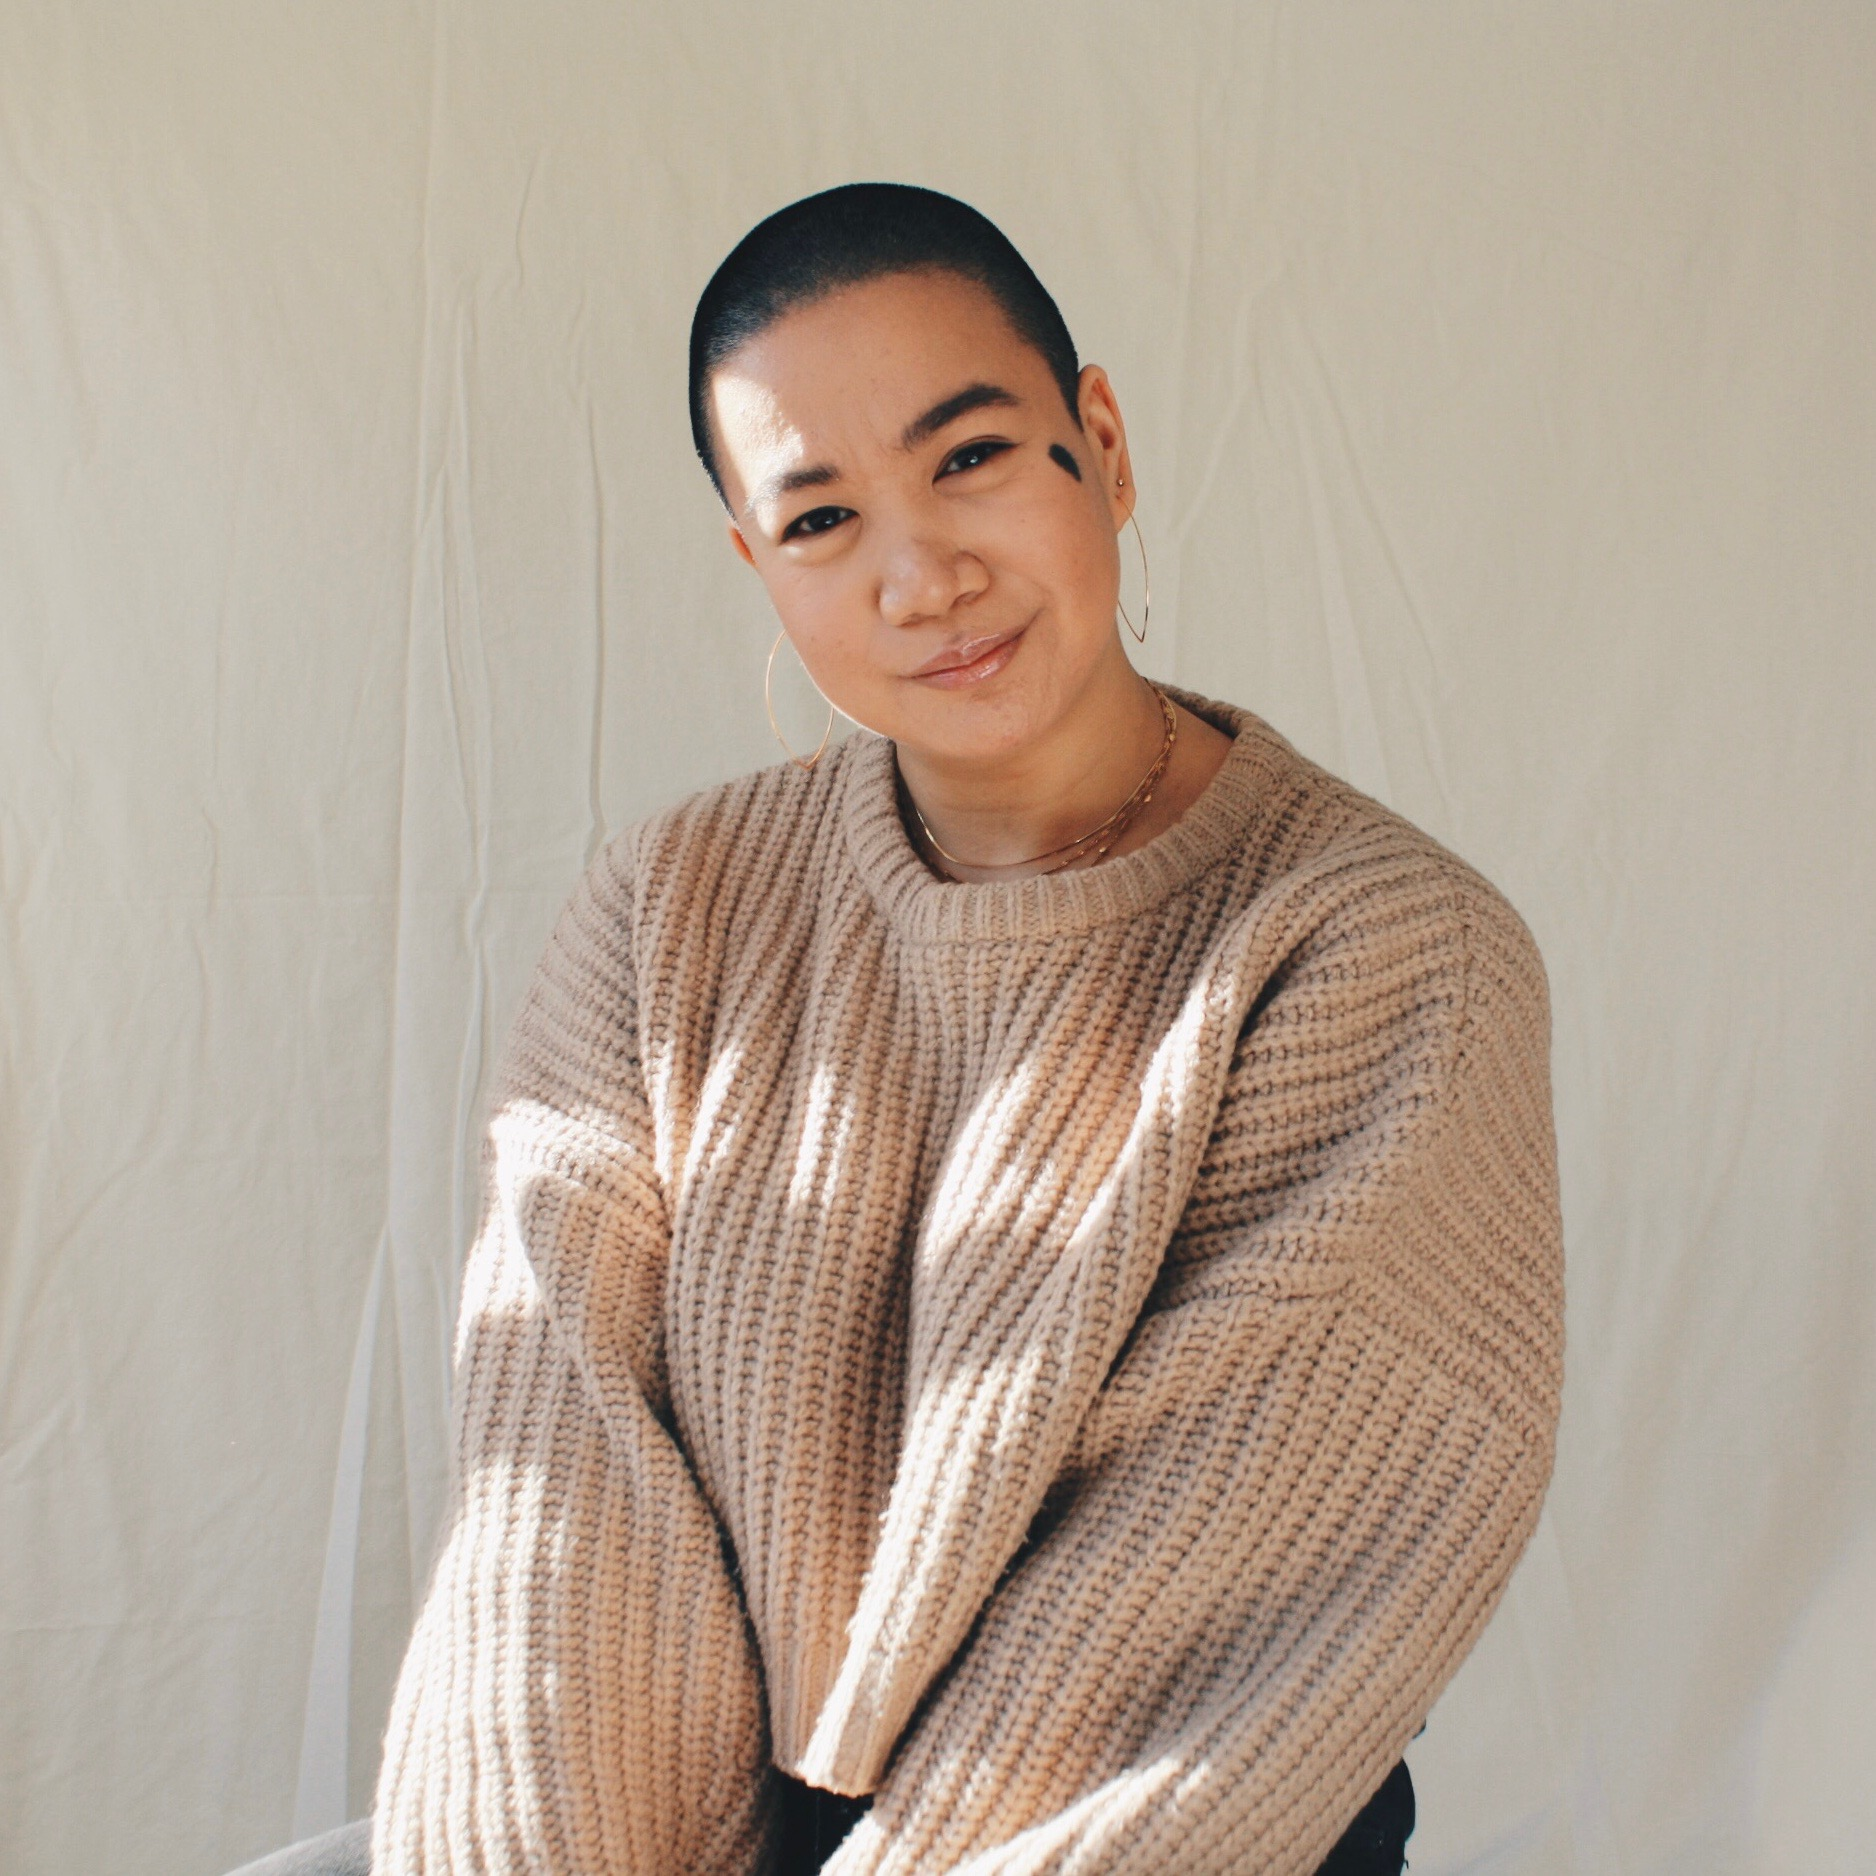 Kamila, a Filipinx woman with a shaved head and an oval birthmark on her left cheek, smiles in front of a white background. Sunshine glints across her face and gold jewellery, creating a mosaic of shadow and light across her light brown sweater.